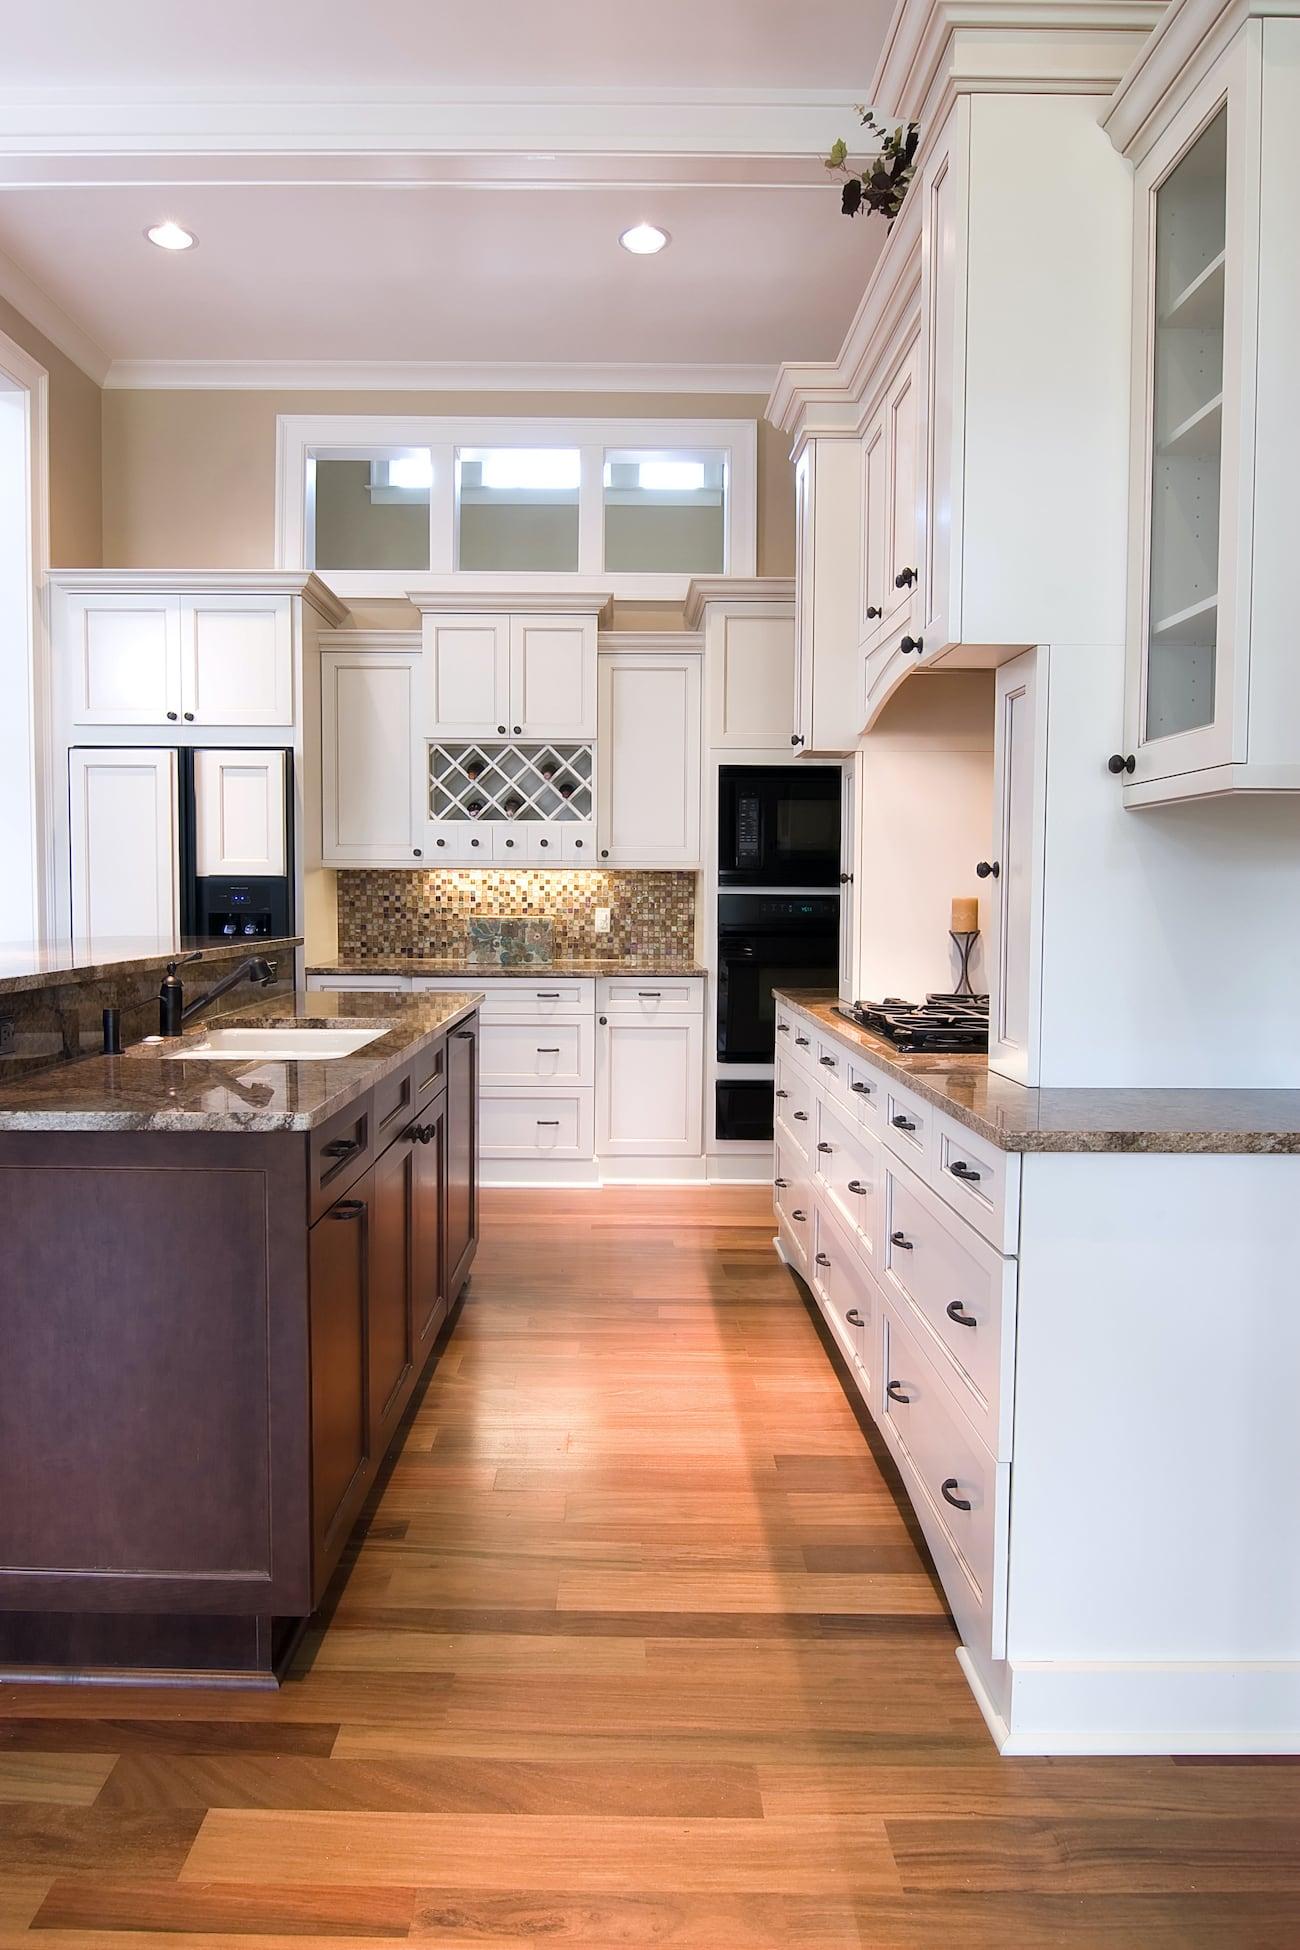 Upscale Kitchen with Wood Flooring